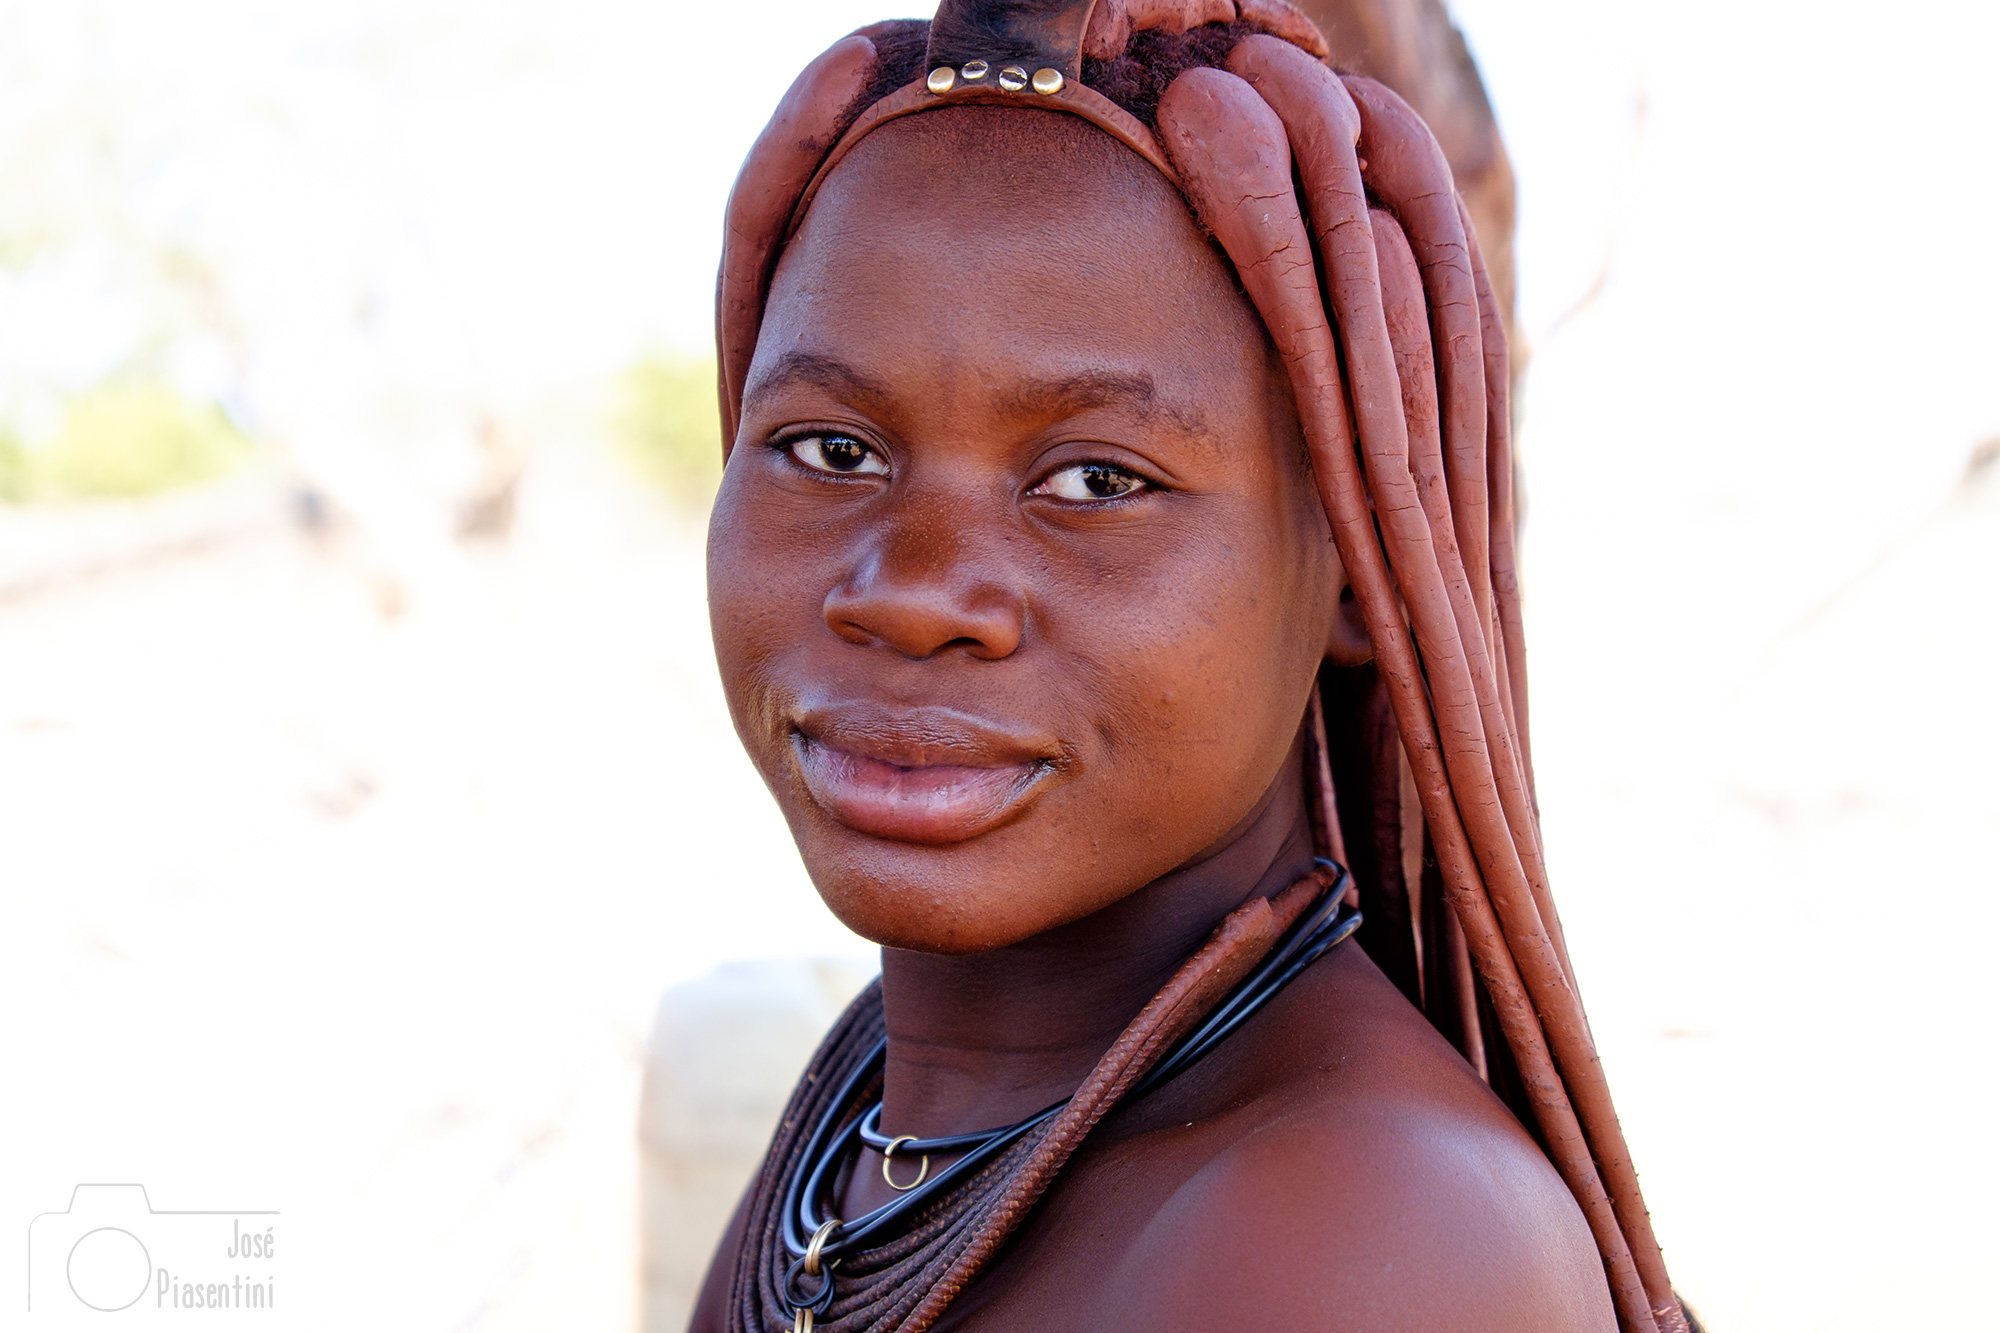 Himba Girl Opuwo Namibia photos